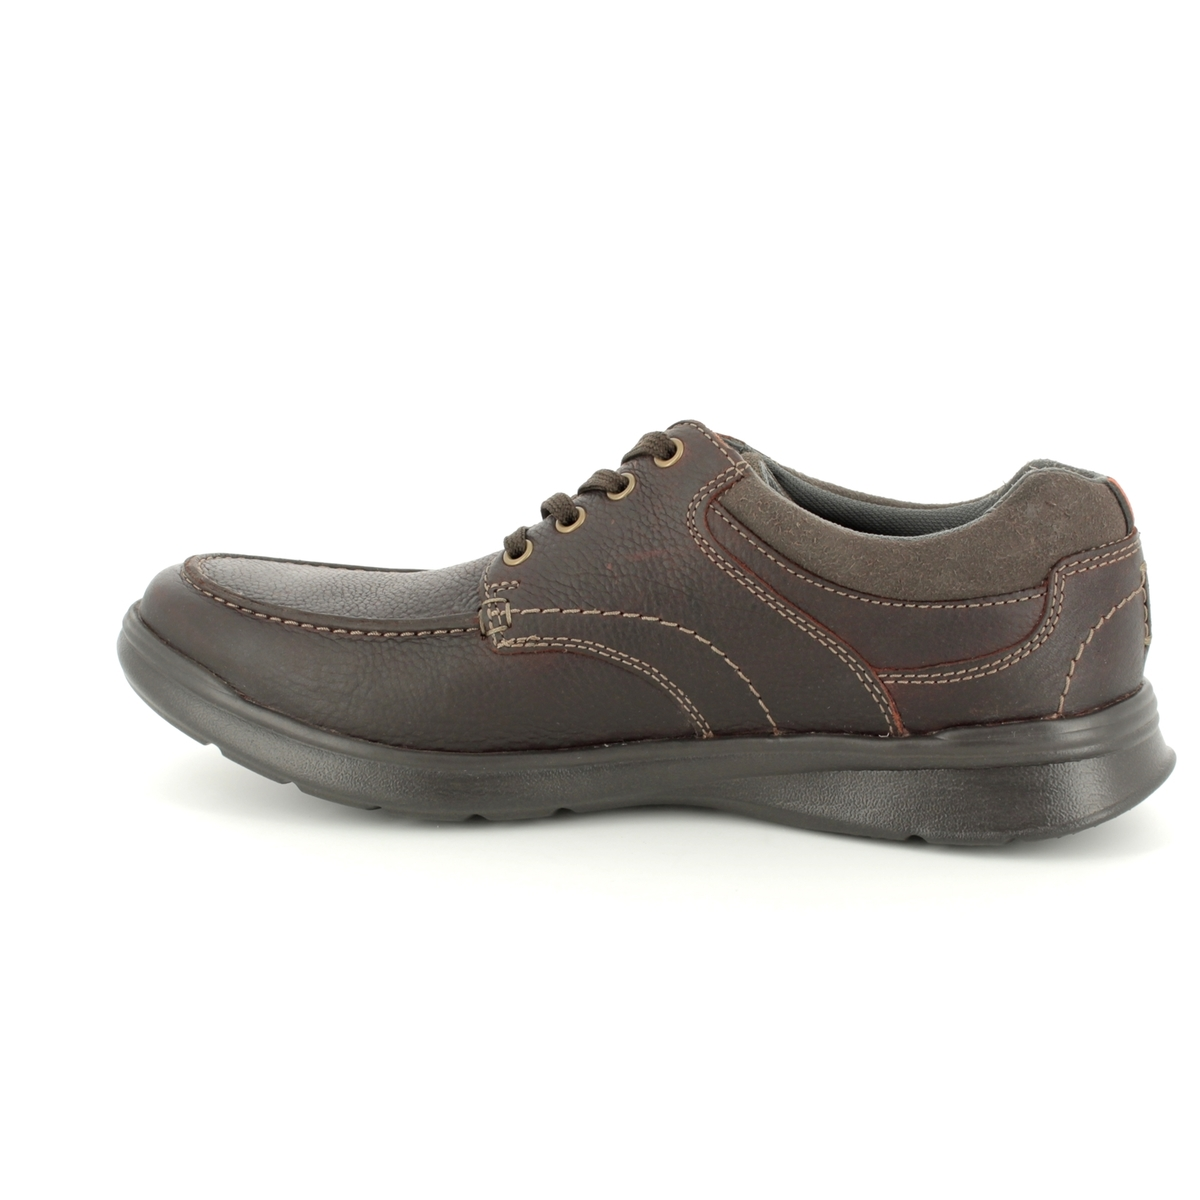 3ee27444a306a Clarks Casual Shoes - Brown - 1980 38H COTRELL EDGE